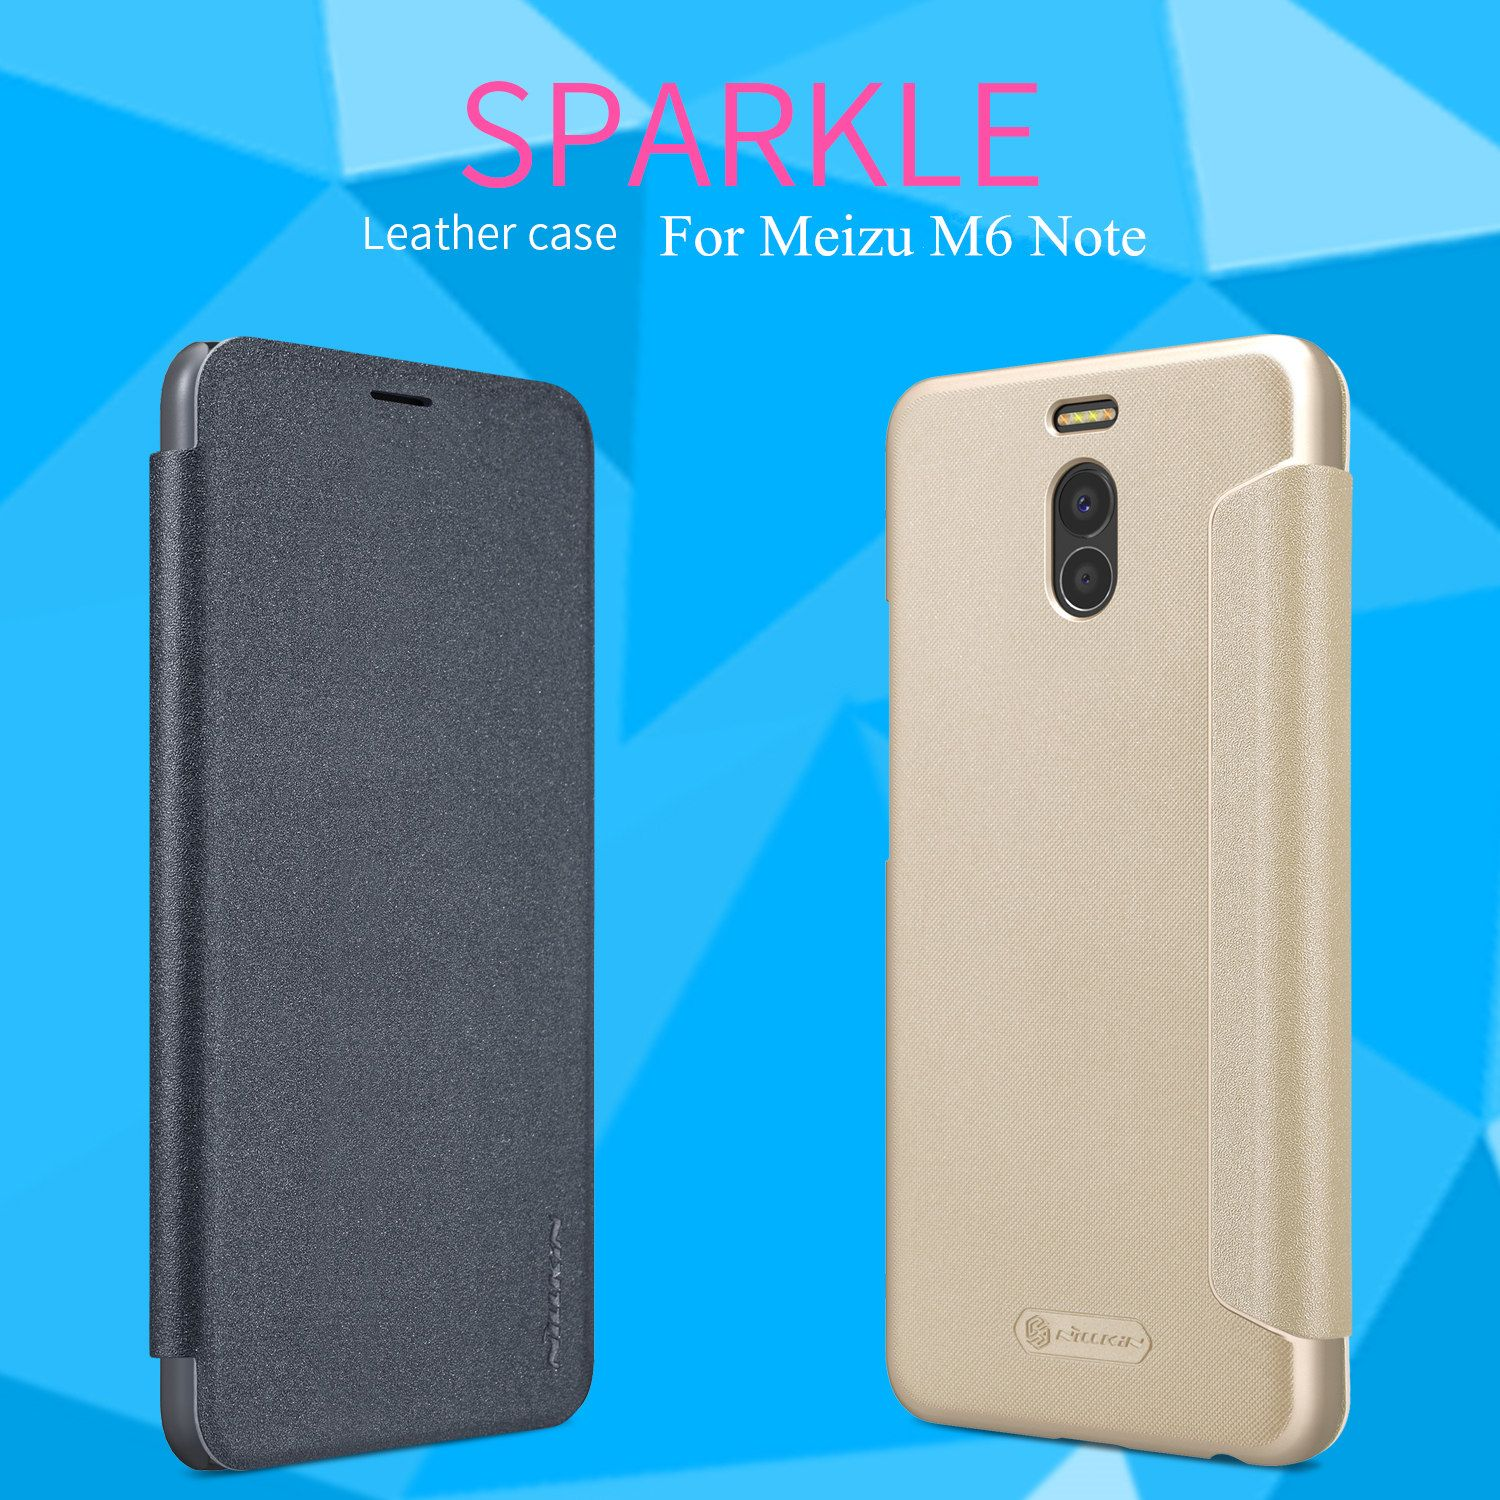 NILLKIN Sparkle Leather Flip Case for Meizu M6 Note Leather Case & PC Plastic Back Cover for Meizu M6 Note Phone Bag